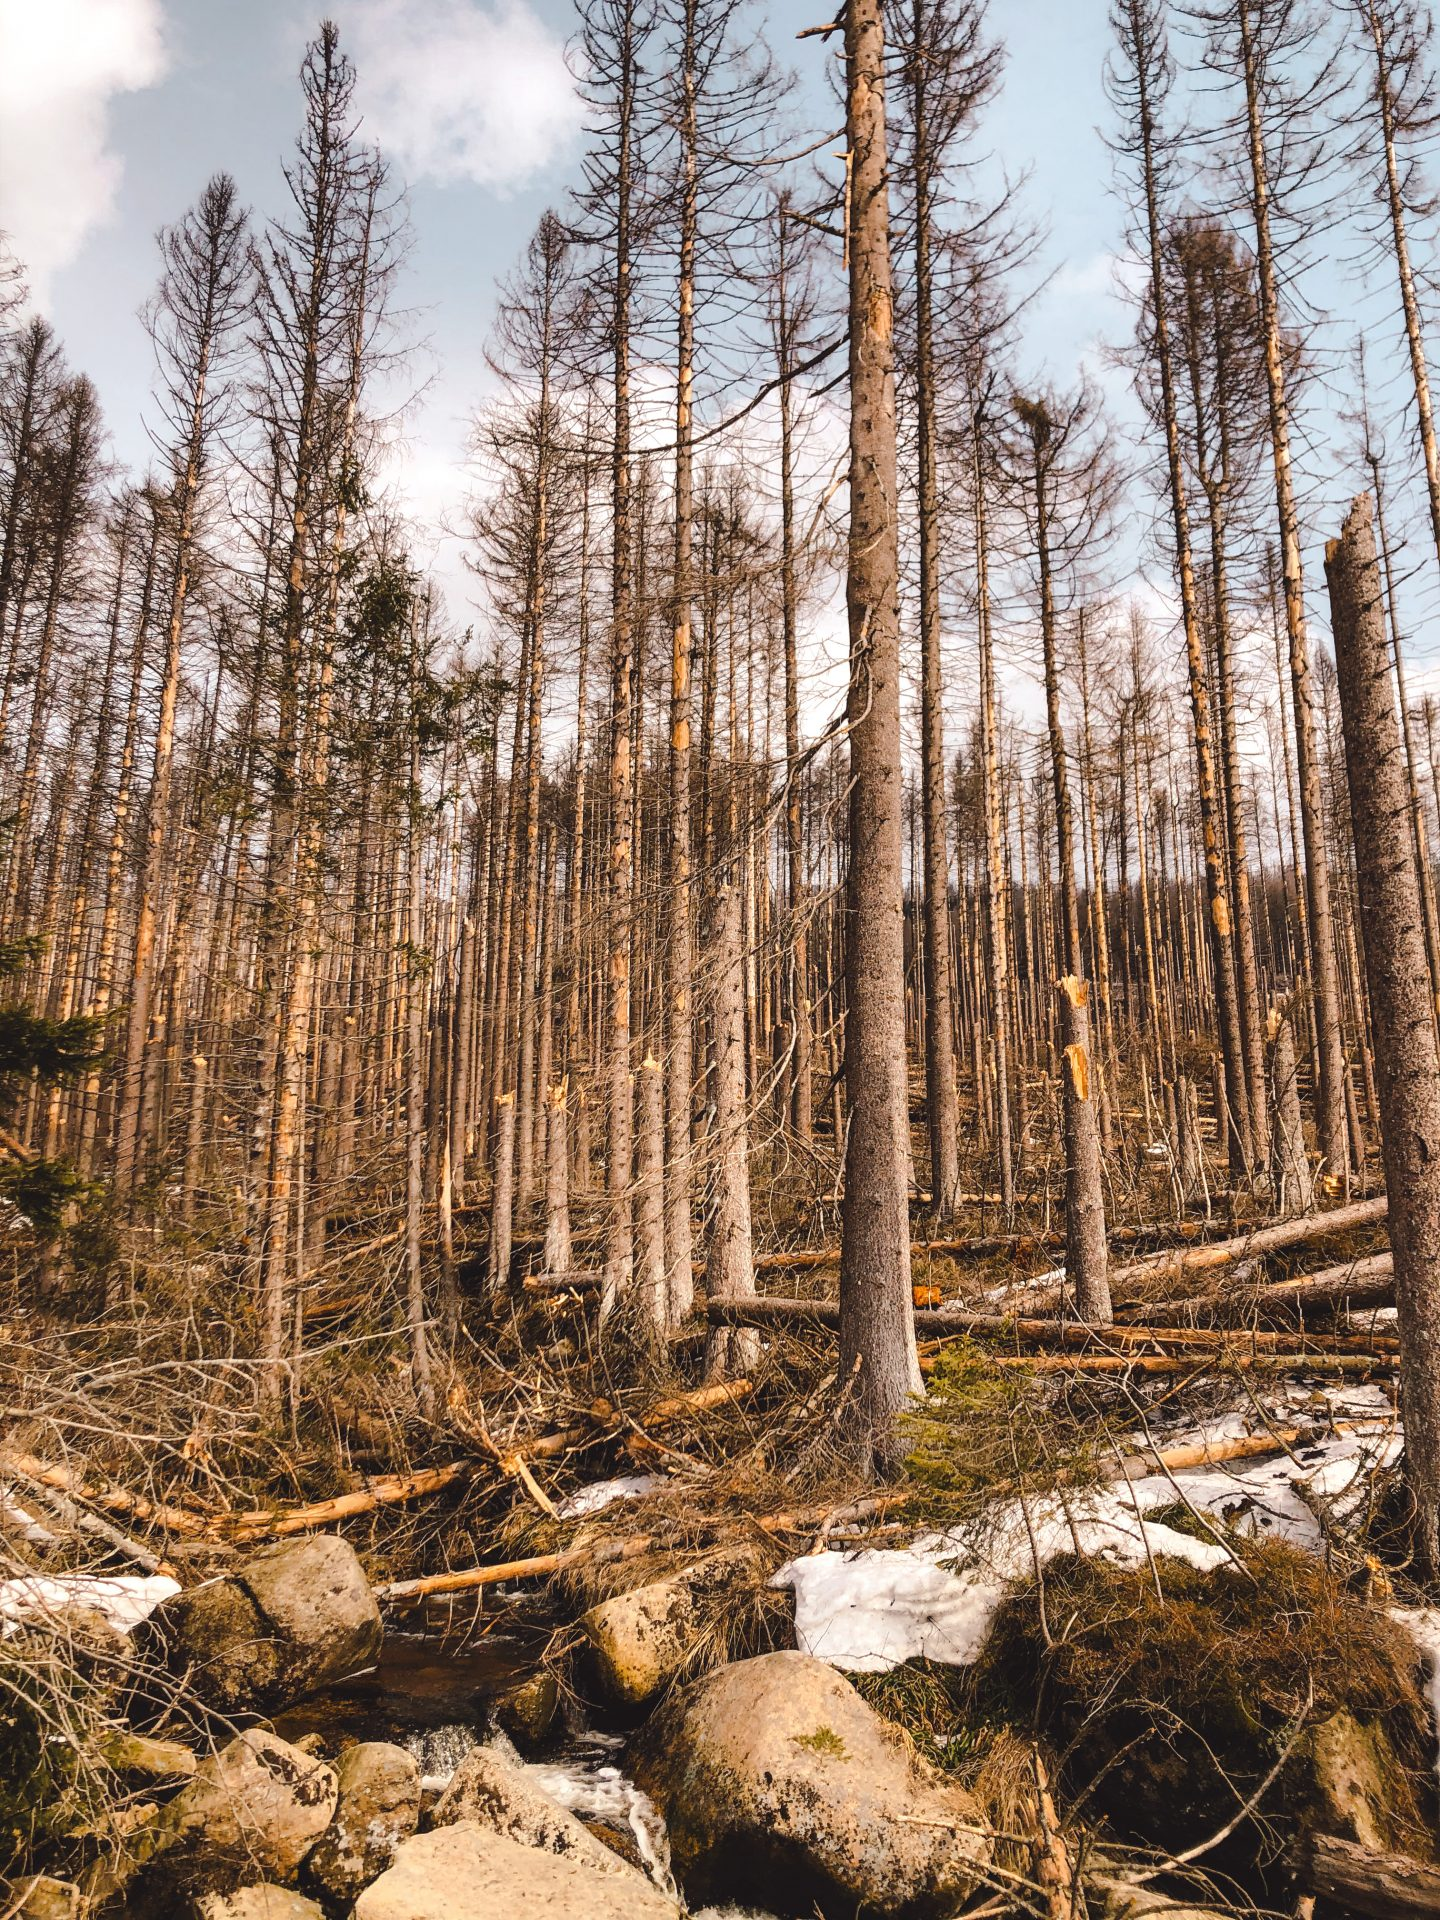 Forest dieback in the Harz Mountains